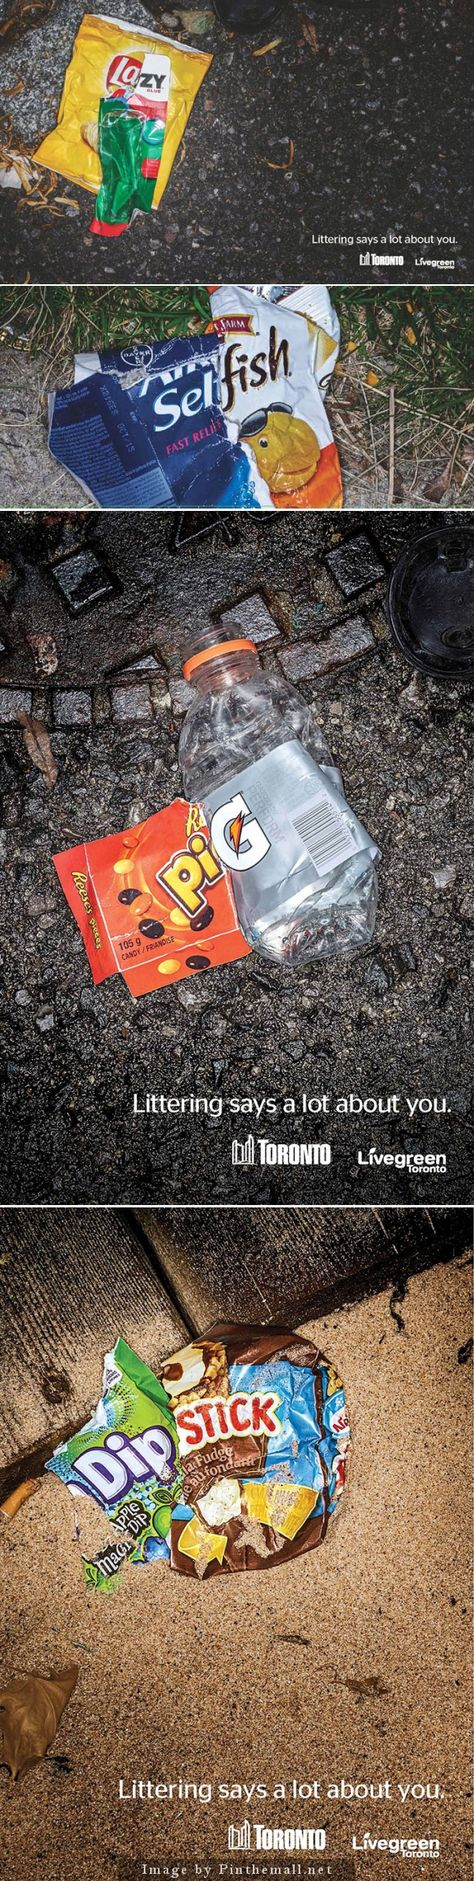 Clever Anti-Littering Ads Use Trash To Mock Litterers